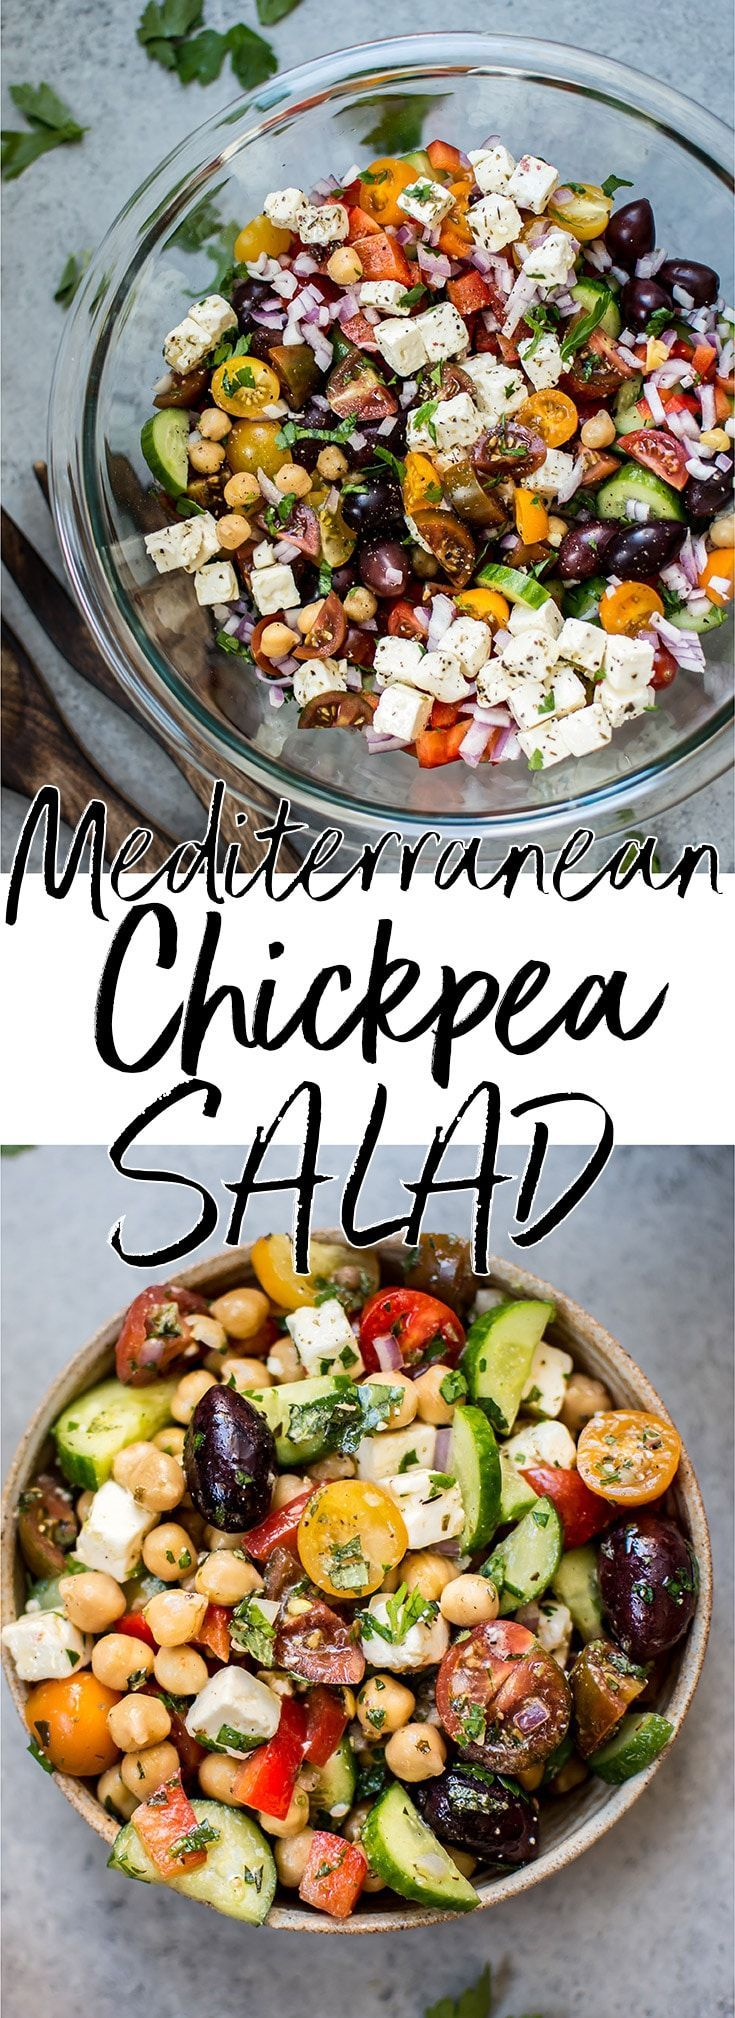 Mediterranean Chickpea Salad | Recipe | Mediterranean chickpea salad, Chickpea salad and Greek salad